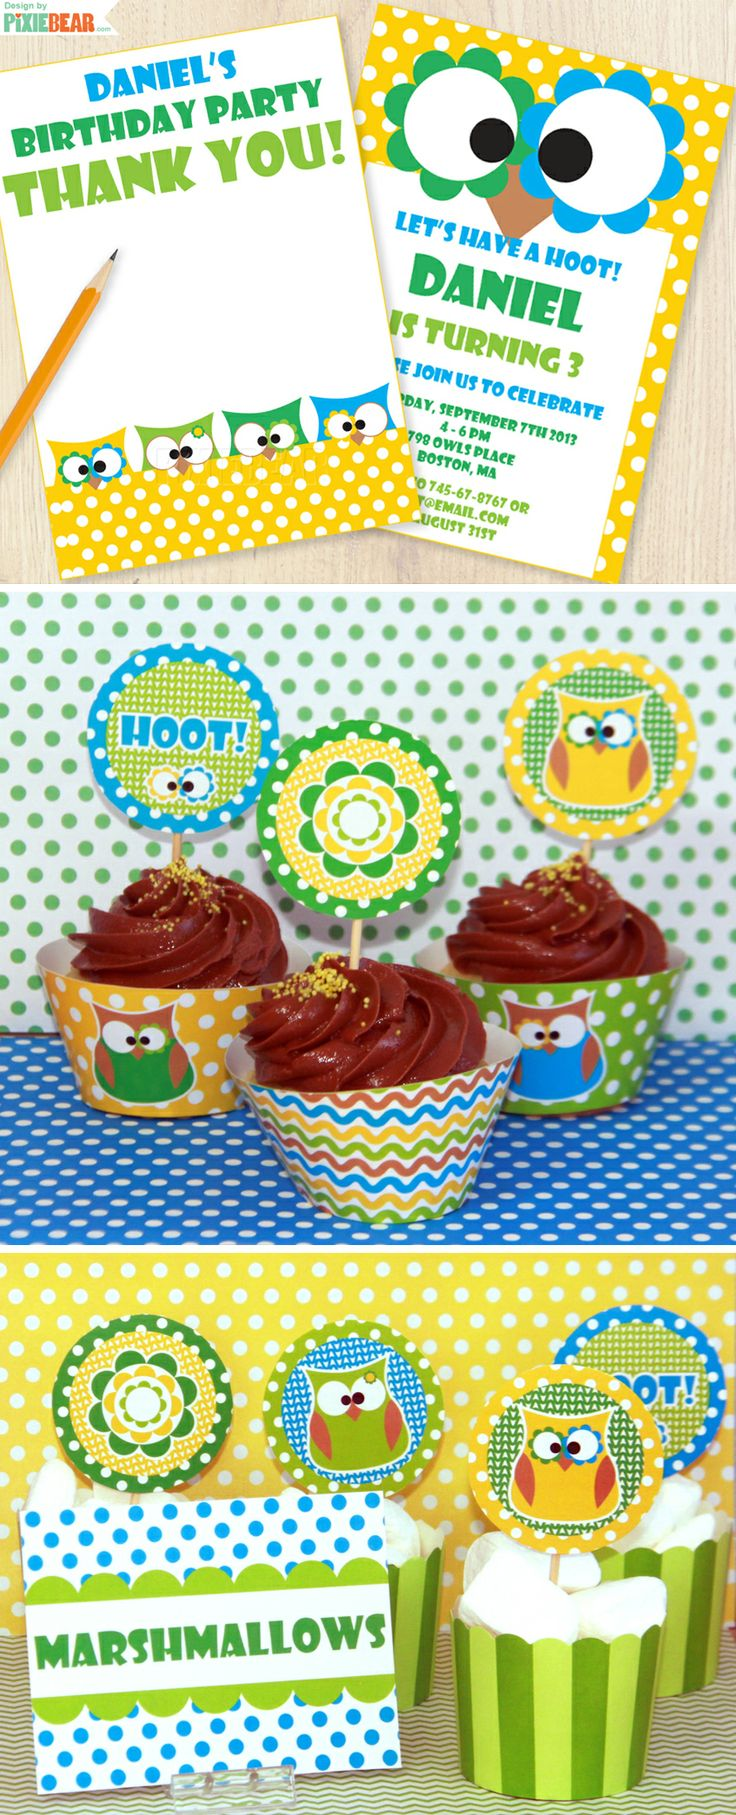 Owl Printable Party Set - DIY Owl Birthday Party by PixieBearParty on Etsy